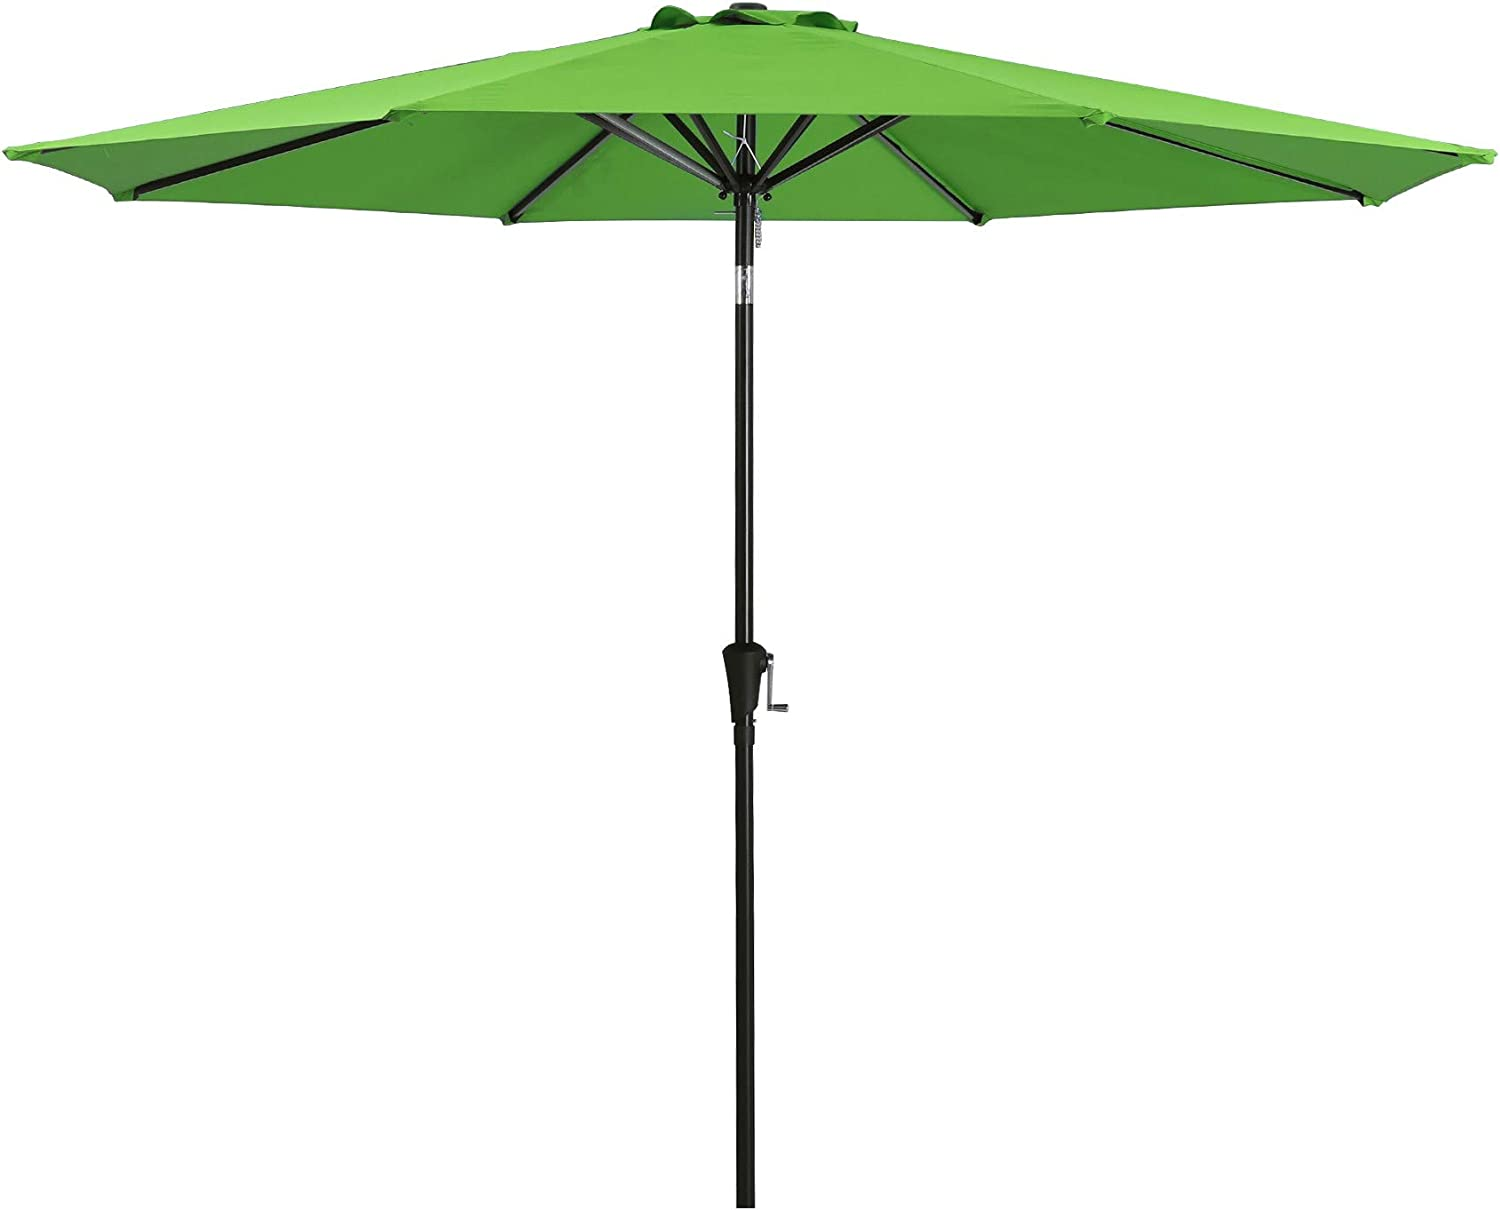 JIESSIWONG Patio Umbrella - Outdoor Table Market Umbrellas with Push Button Tilt and Crank for Garden,Backyard & Pool,8 Sturdy Square Ribs (11ft,Apple Green)